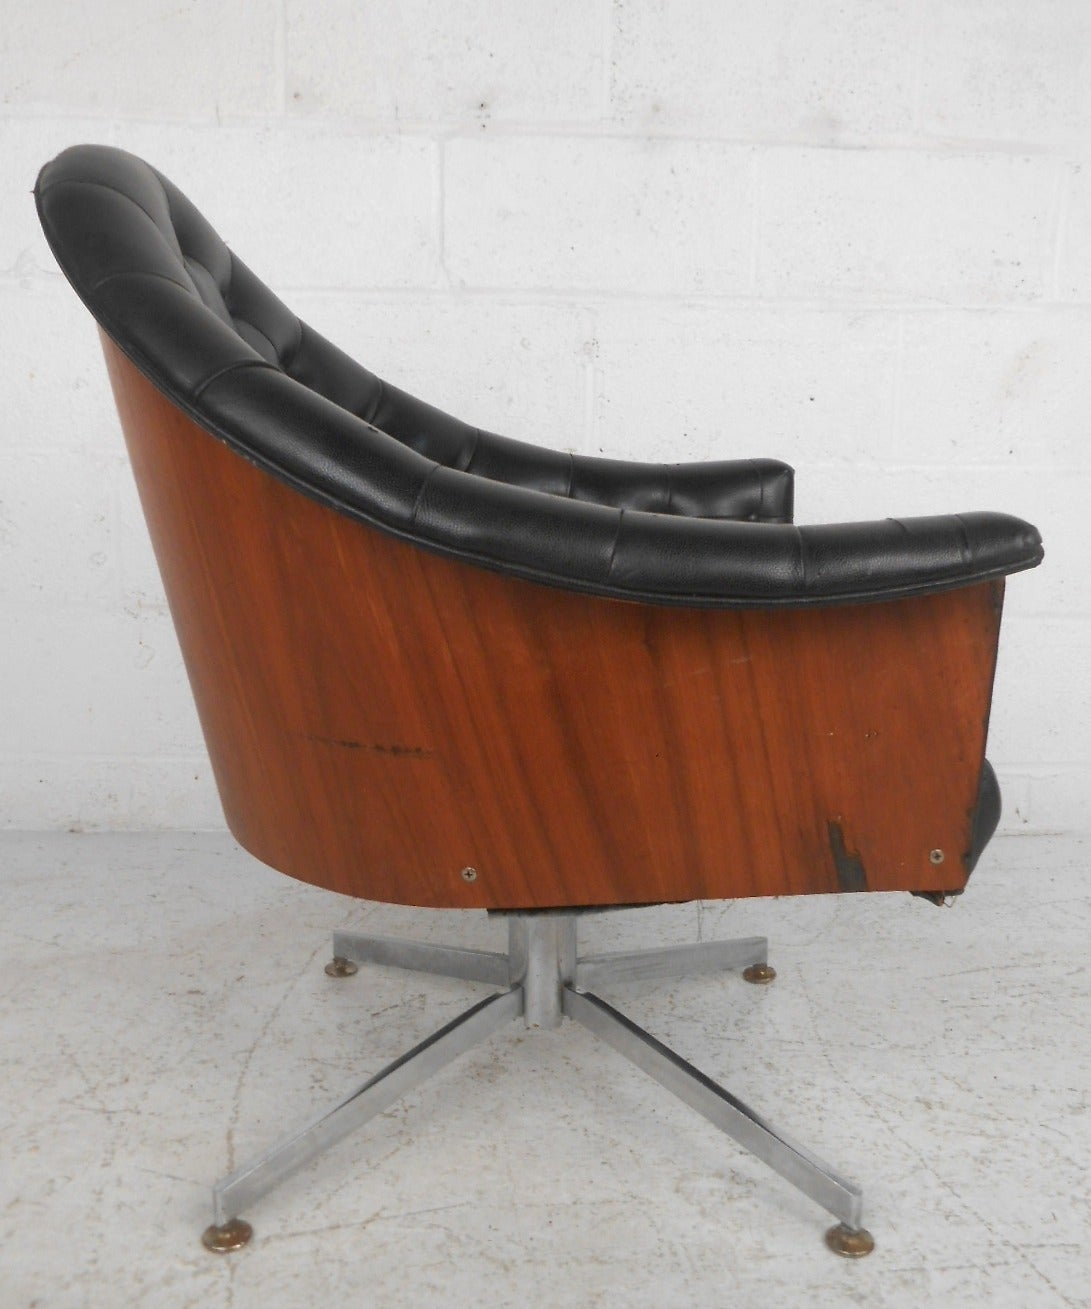 Mid Century Modern Adrian Pearsall Style Tufted Swivel Desk Chair At 1stdibs